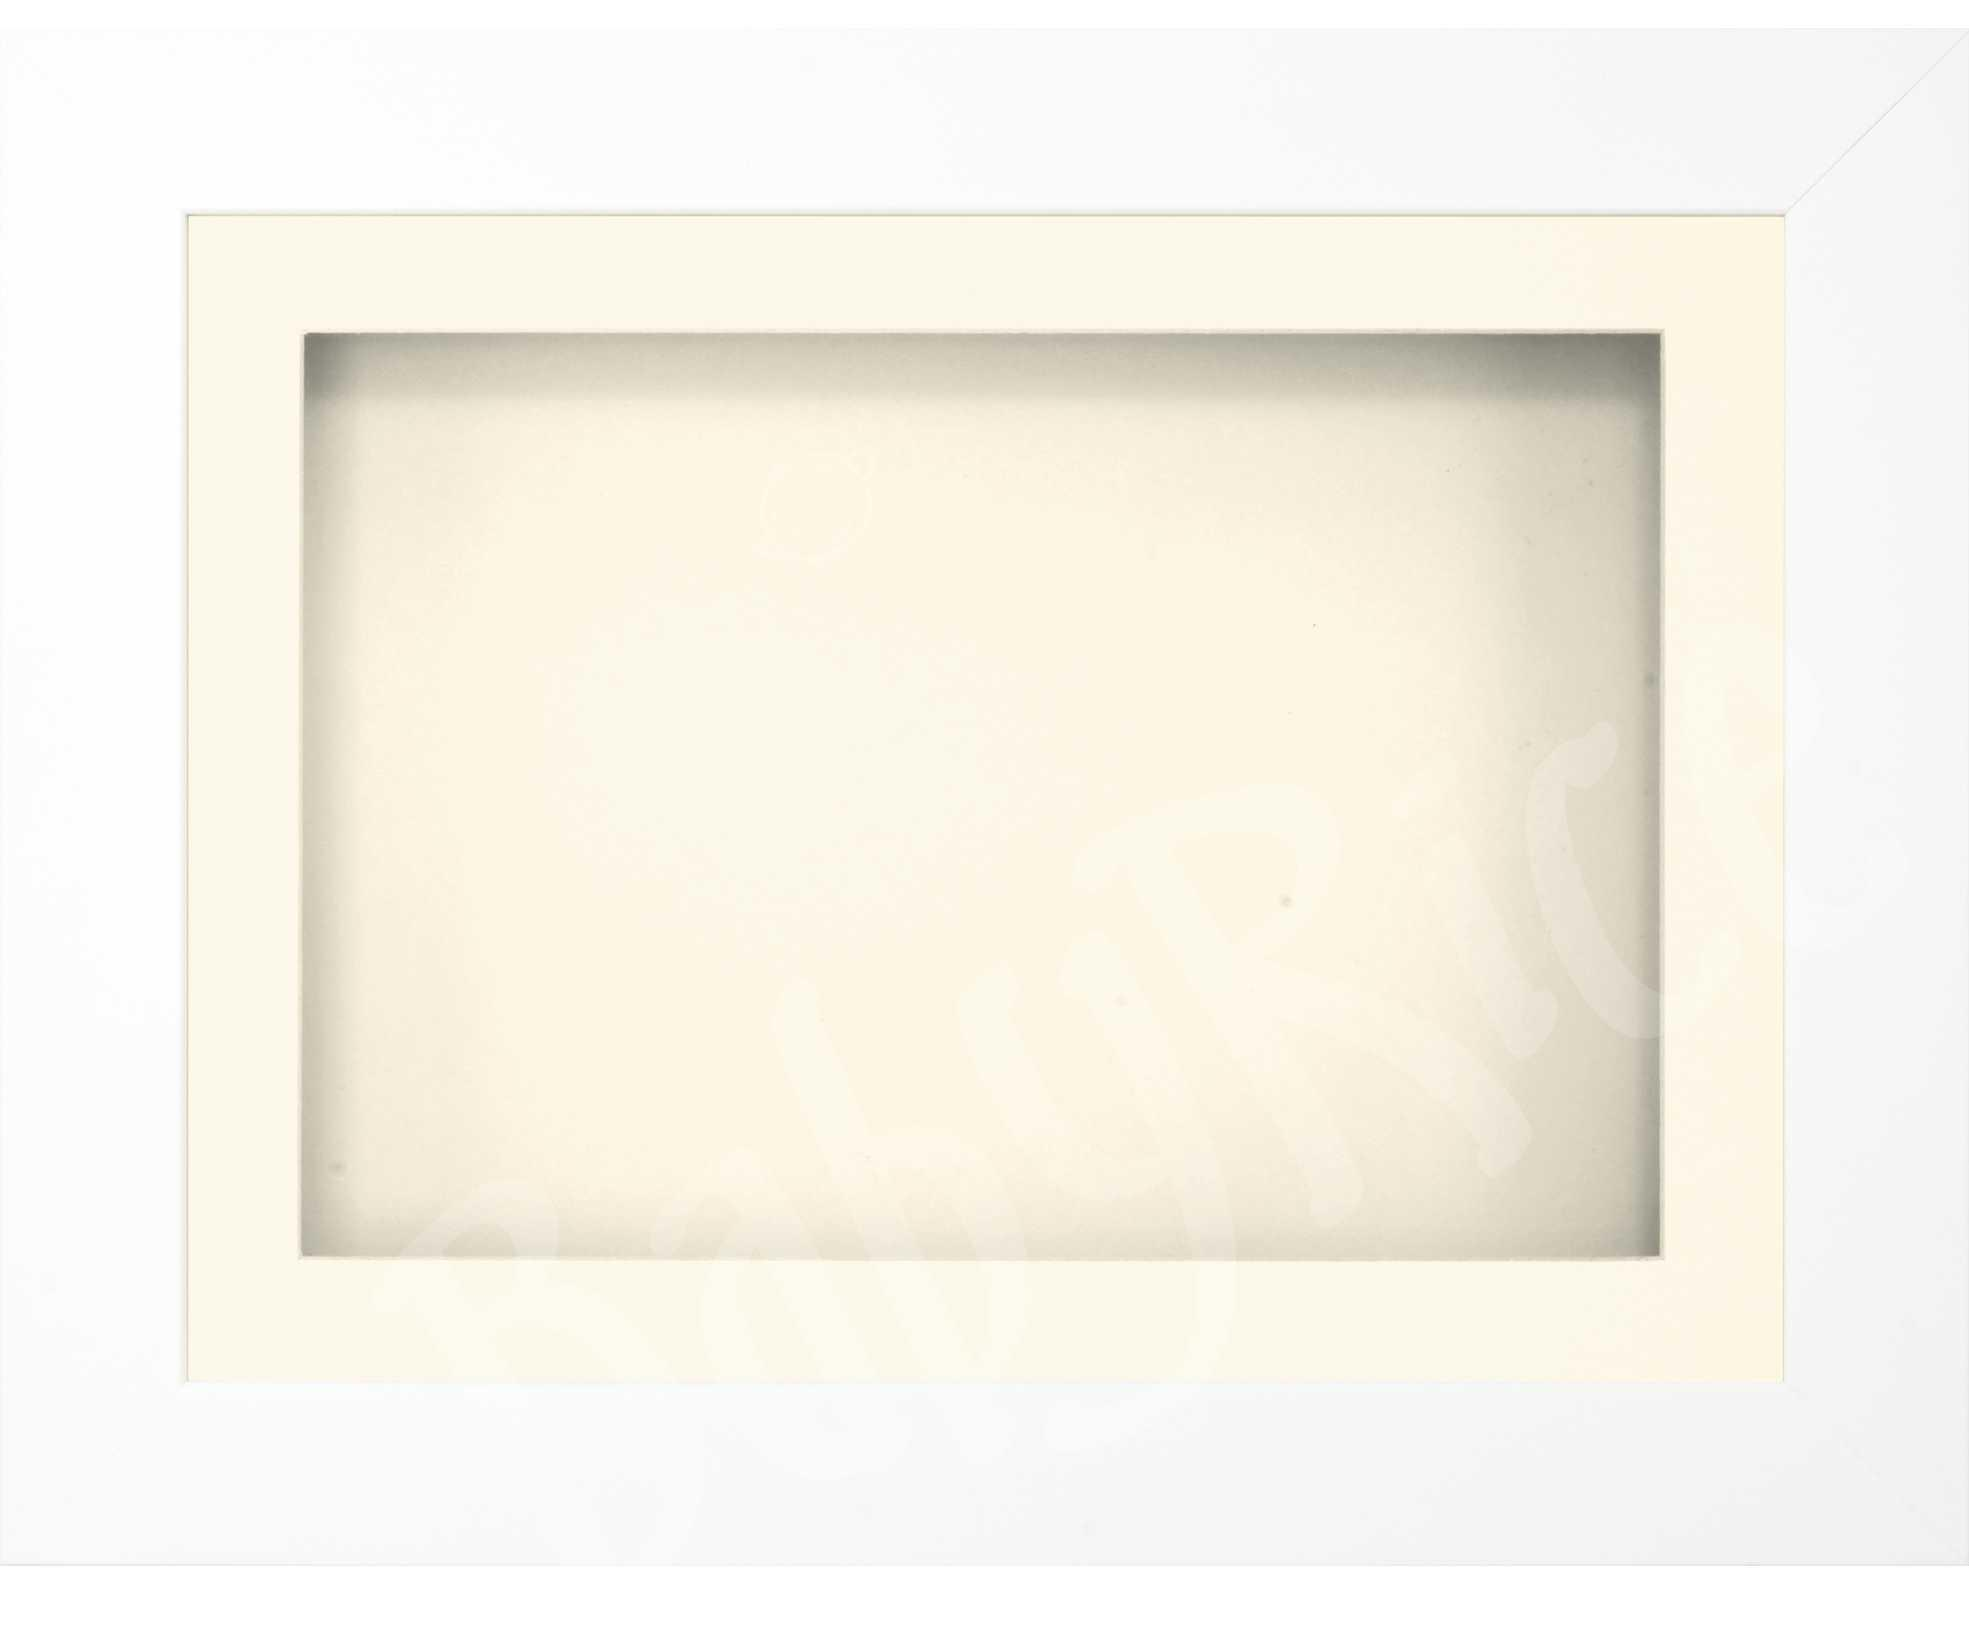 "11.5x8.5"" White 3D Display Frame 1 Hole Cream Mount Cream Back"